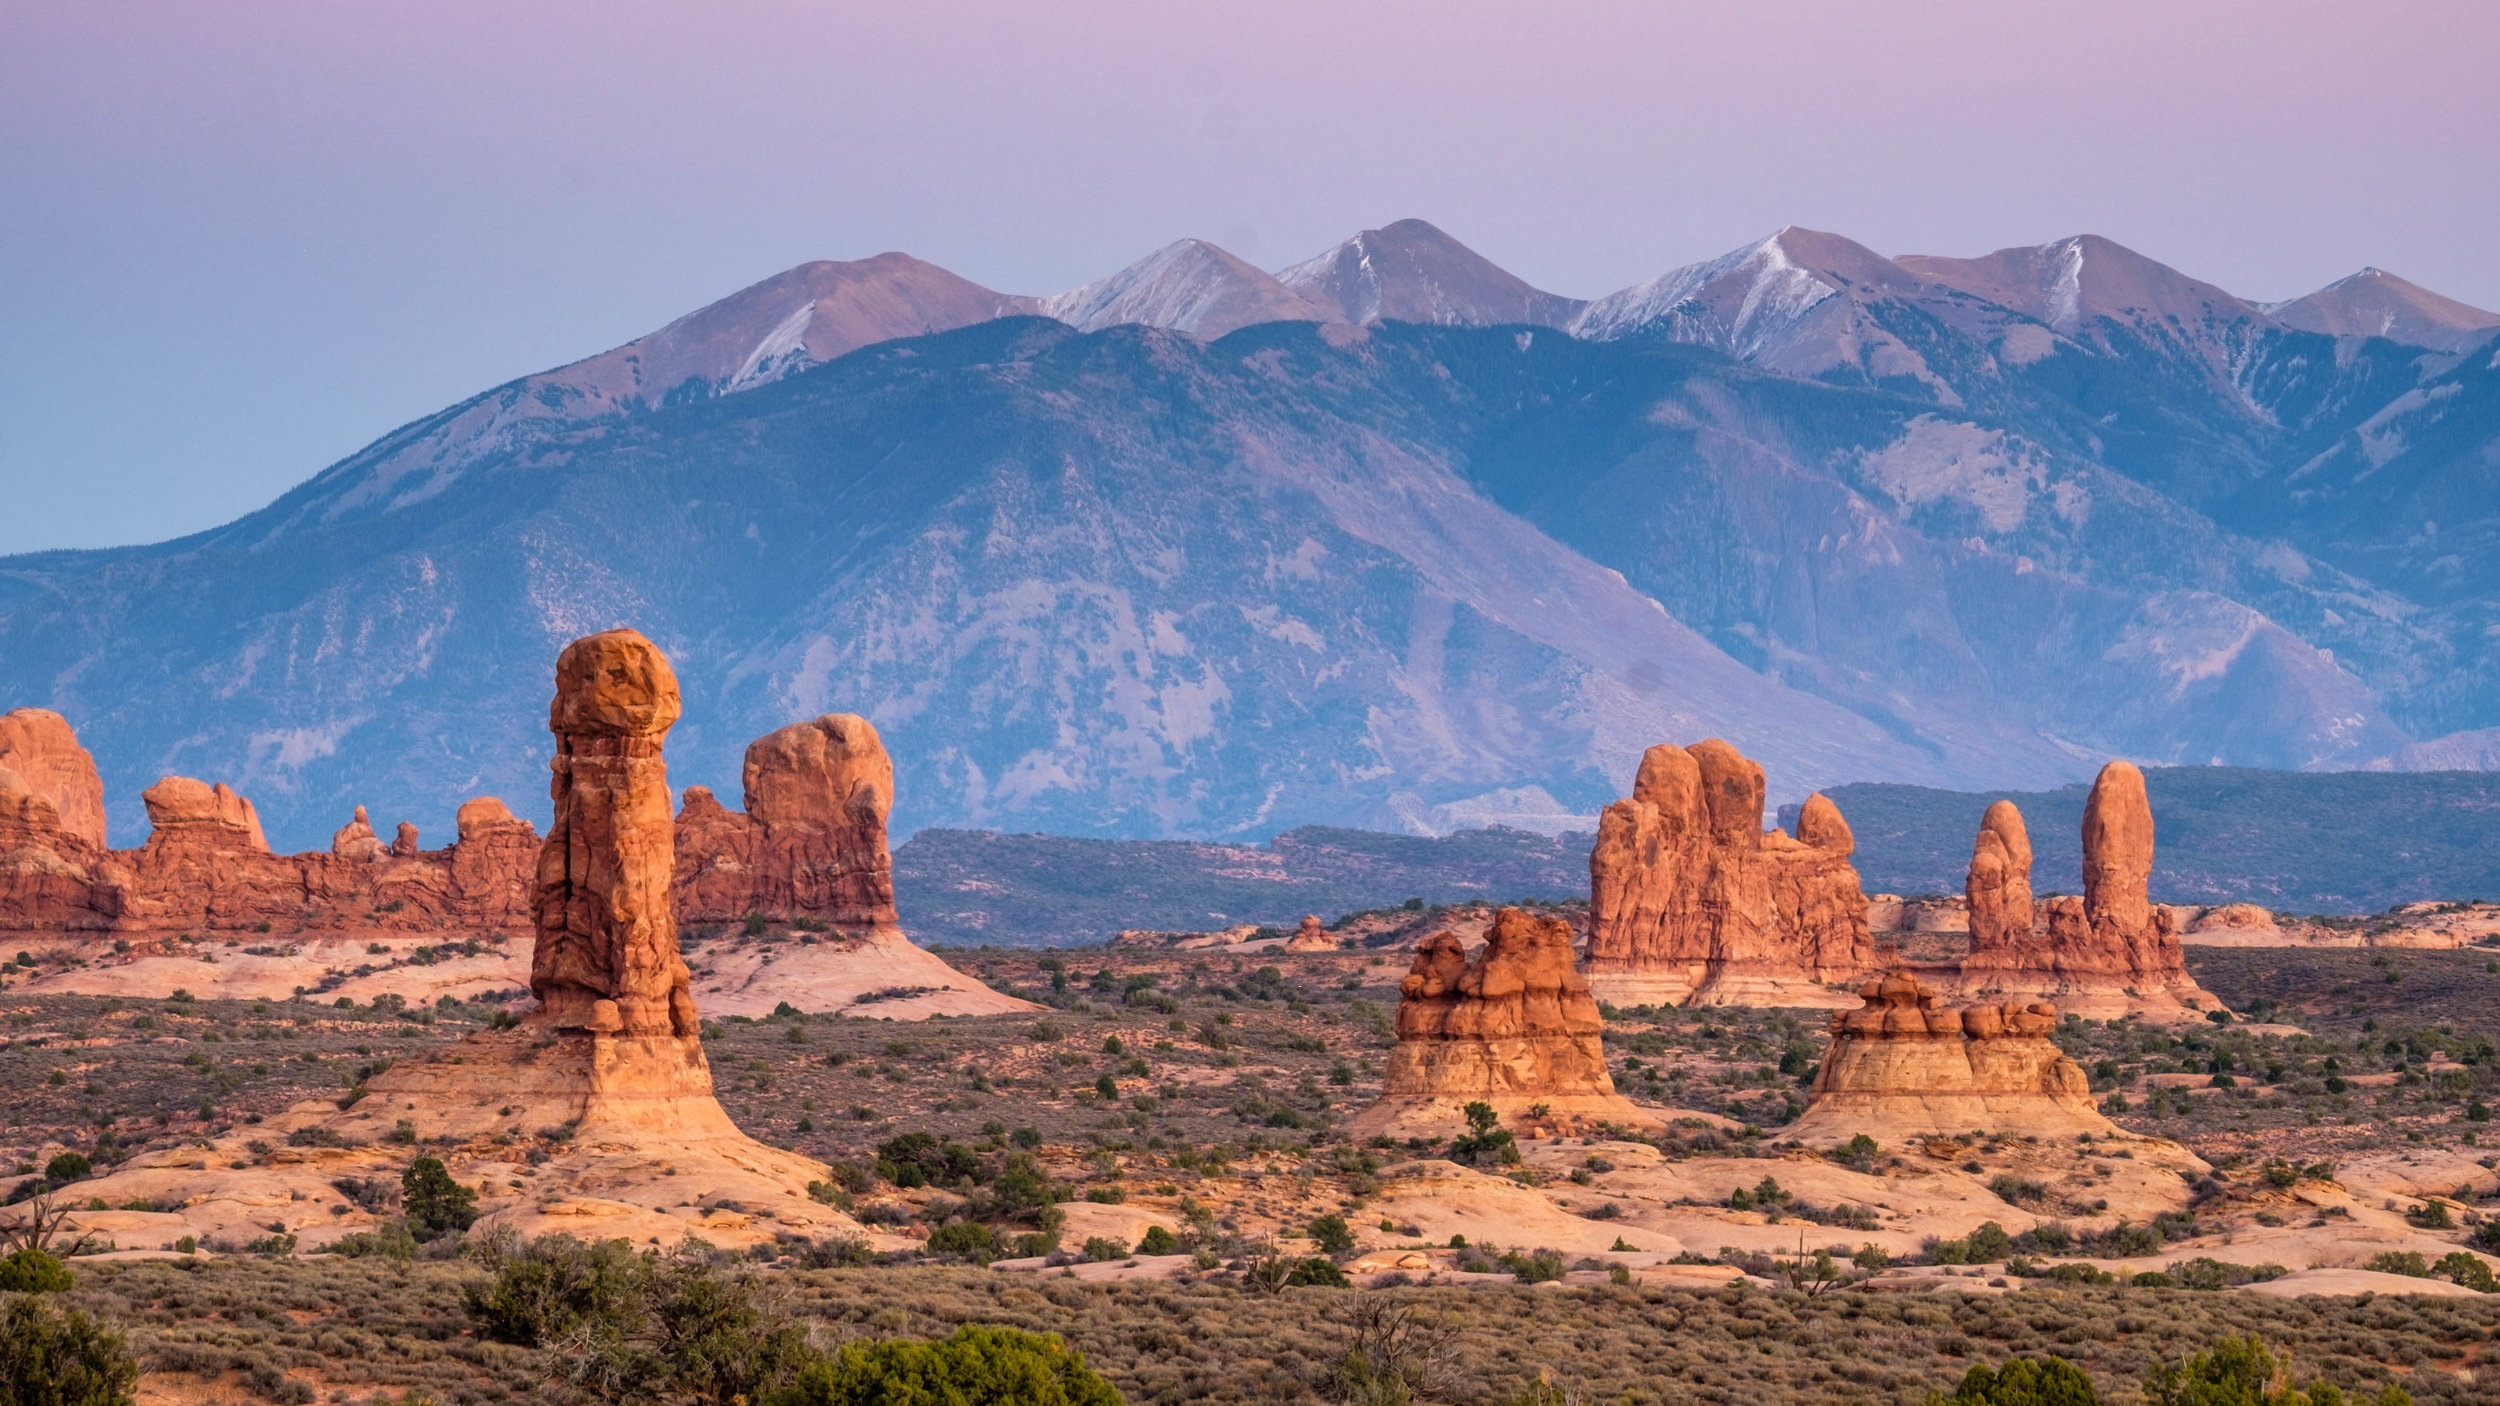 Rock pinnacles near the Windows section of the park, with the La Sal Mountains as a backdrop.